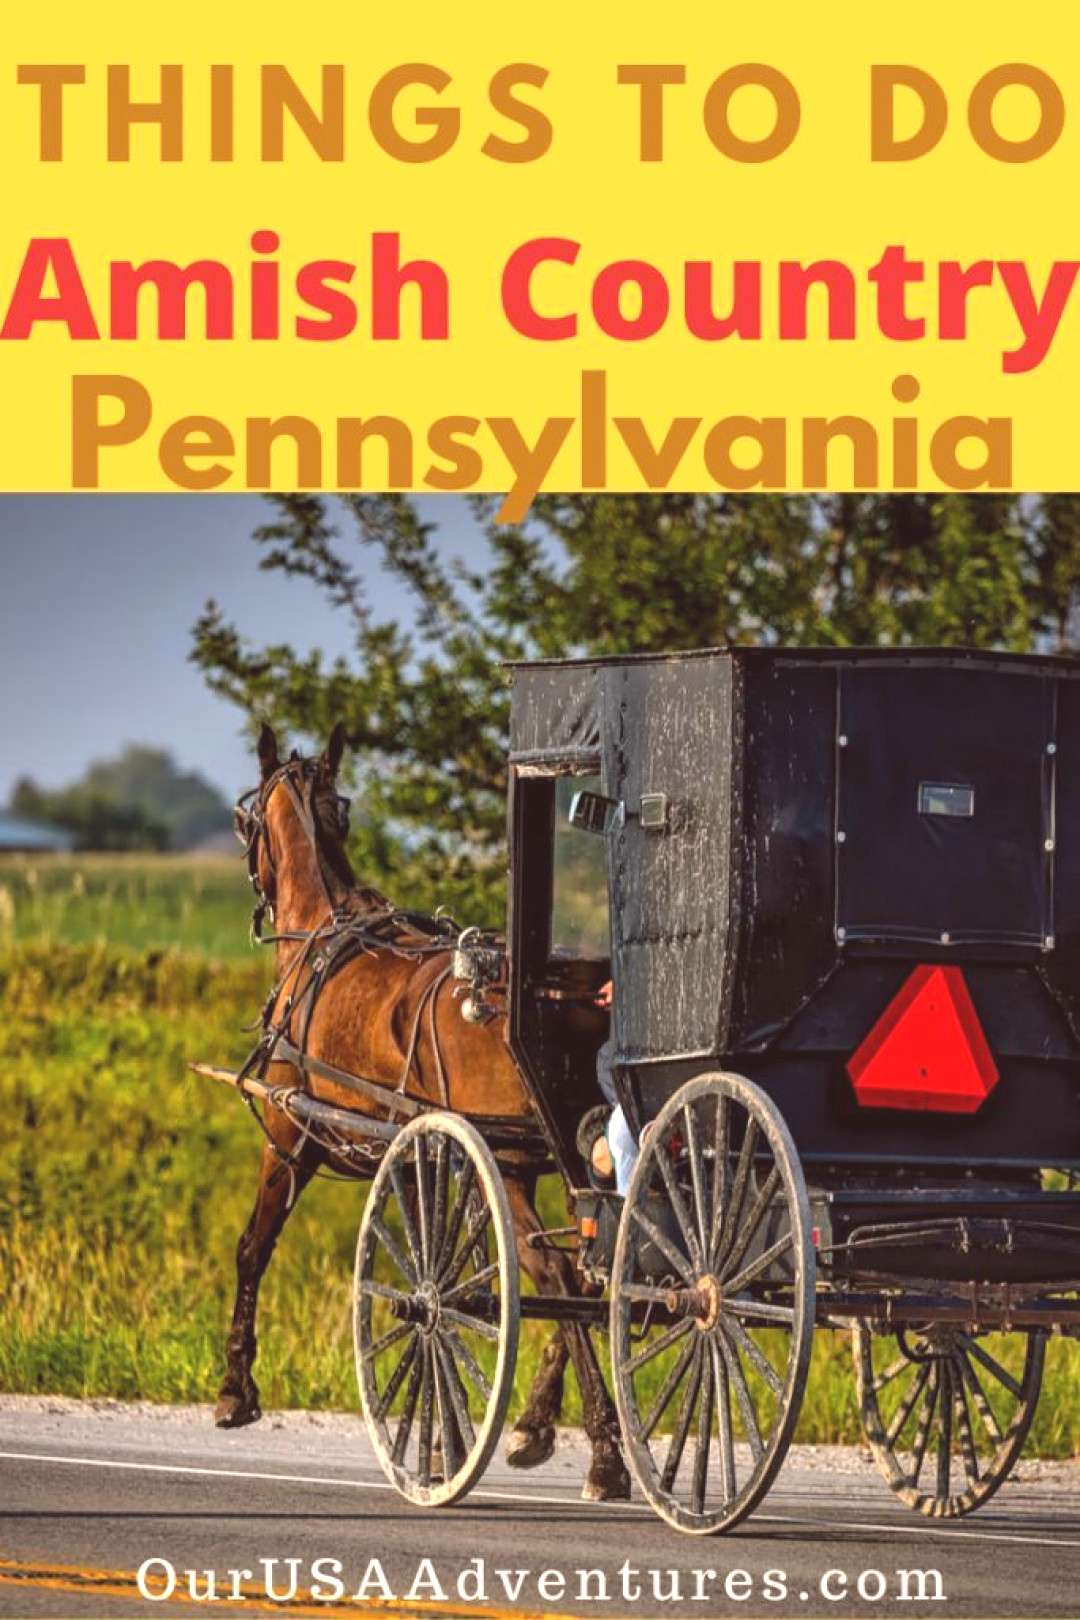 Things To Do in Amish Country Pennsylvania,  Things To Do in Amish Country Pennsylvania,